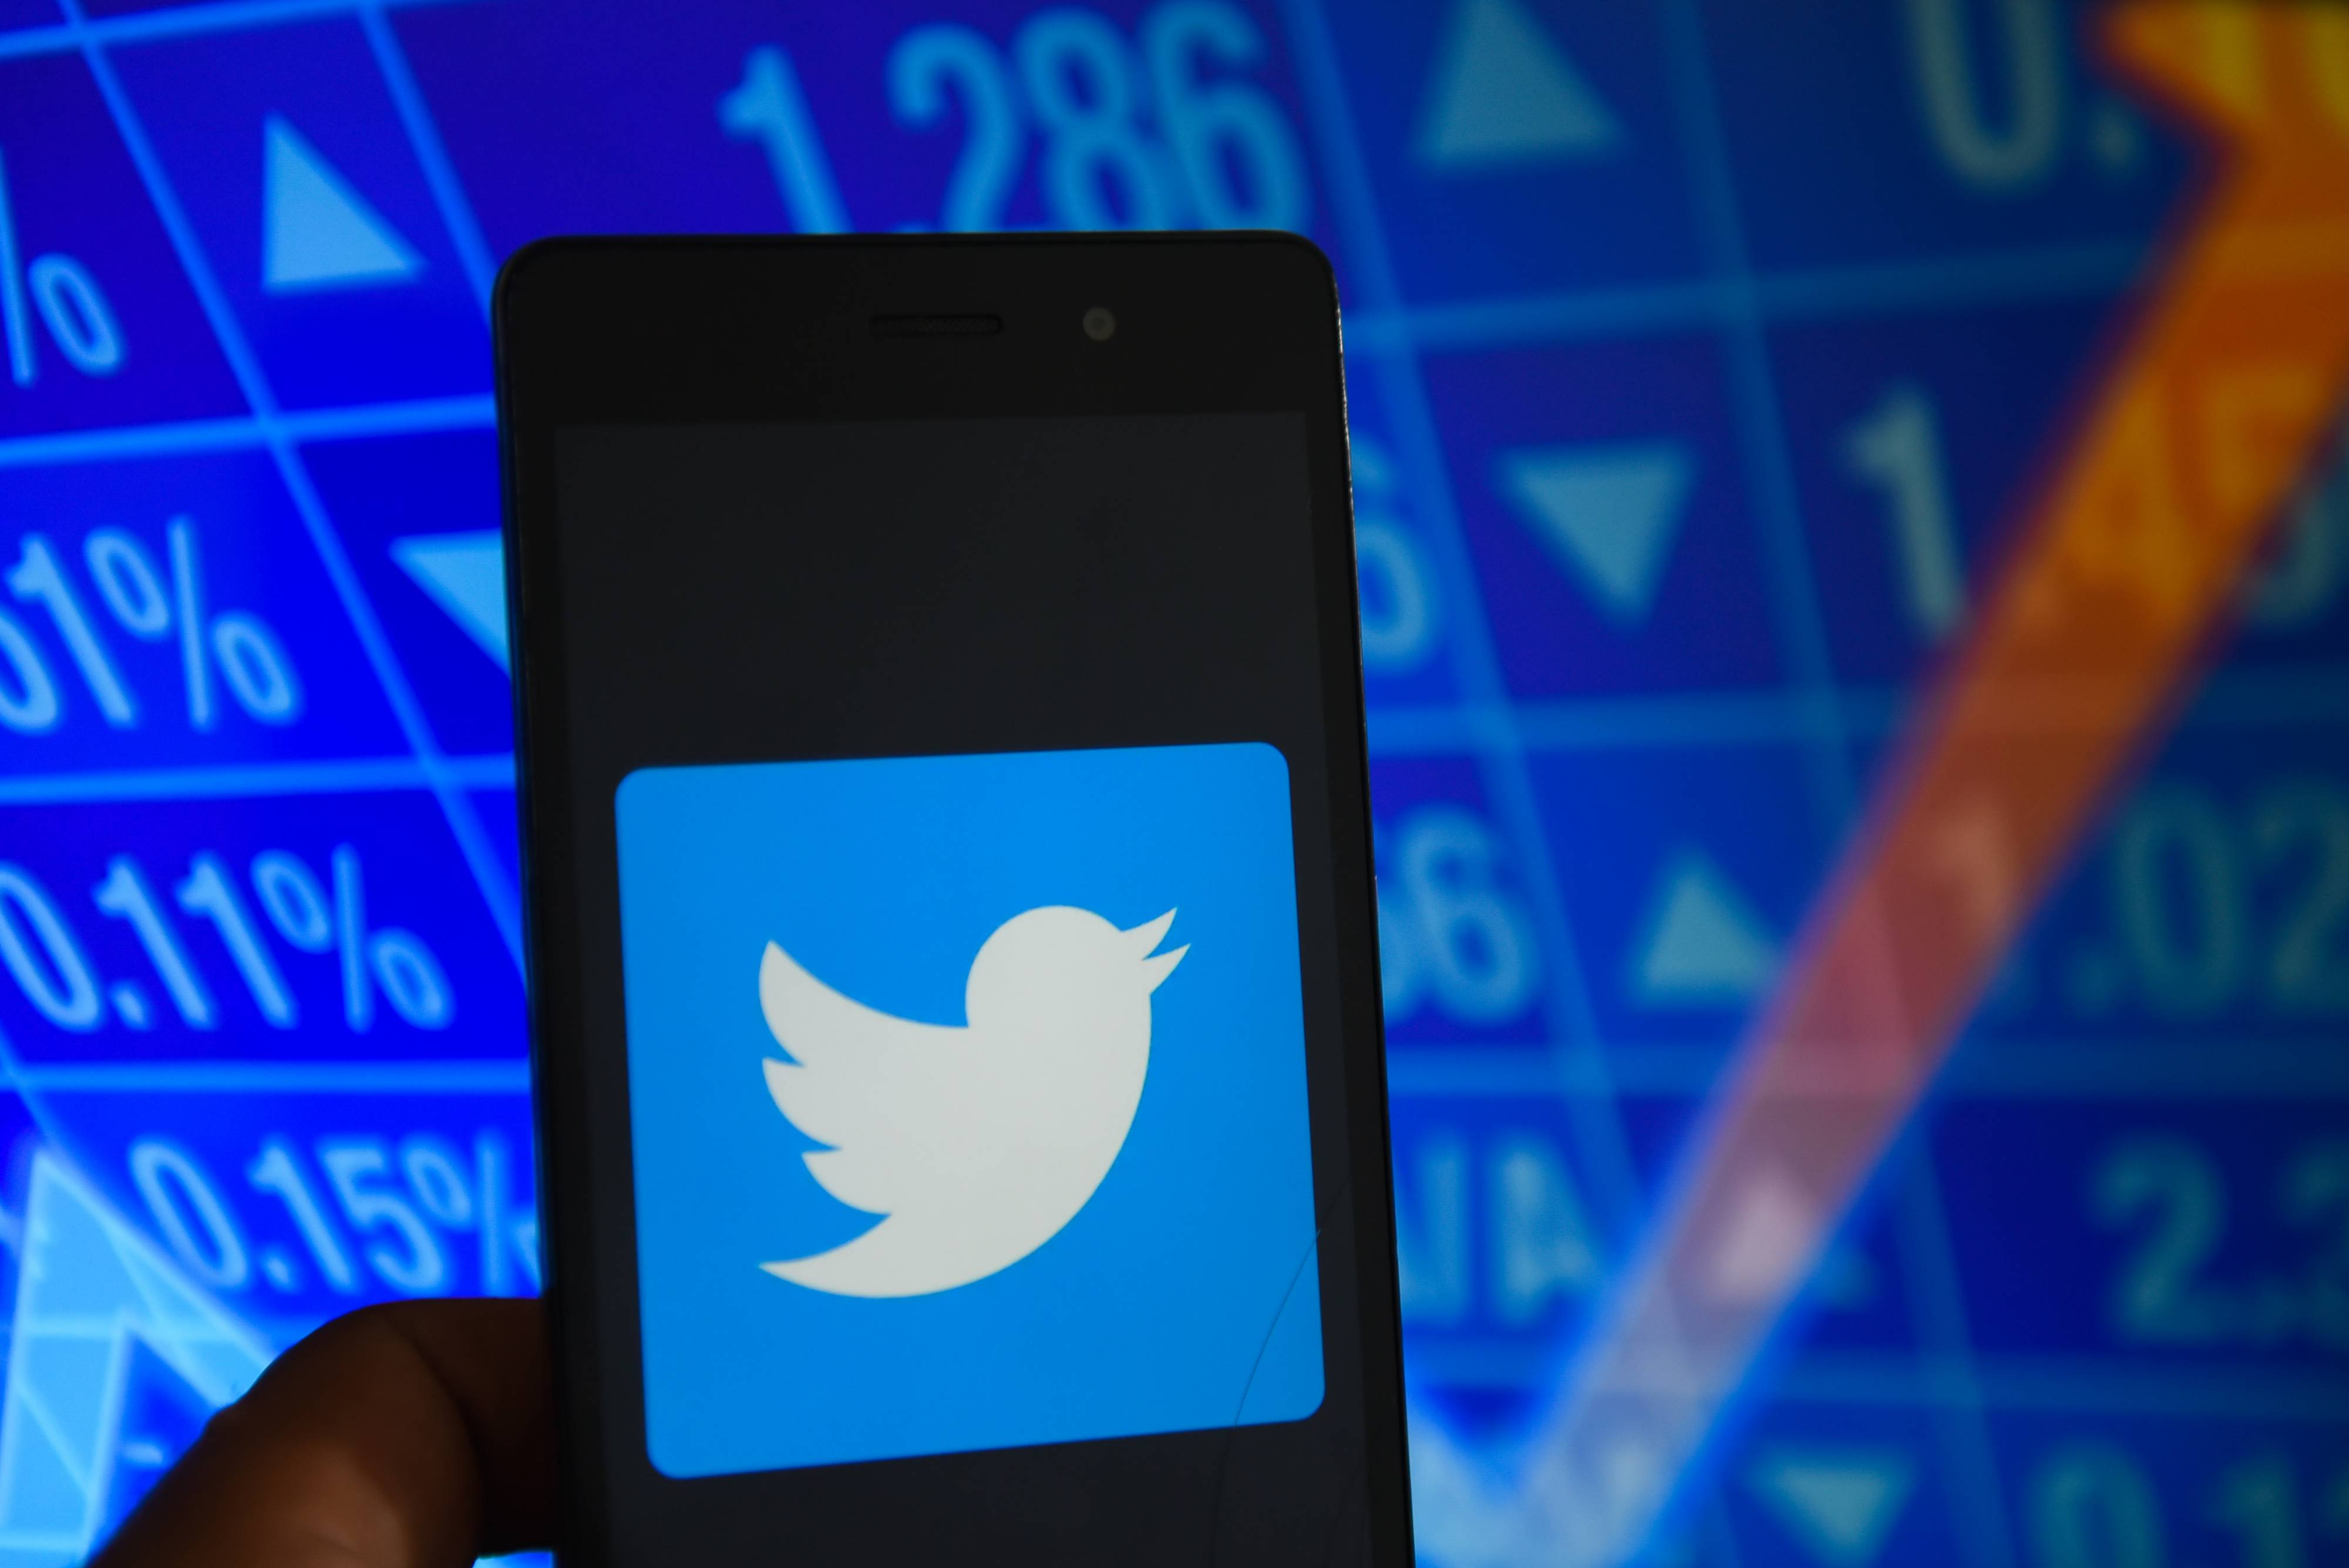 Twitter Getting Help From Academics To Improve Its 'Health'